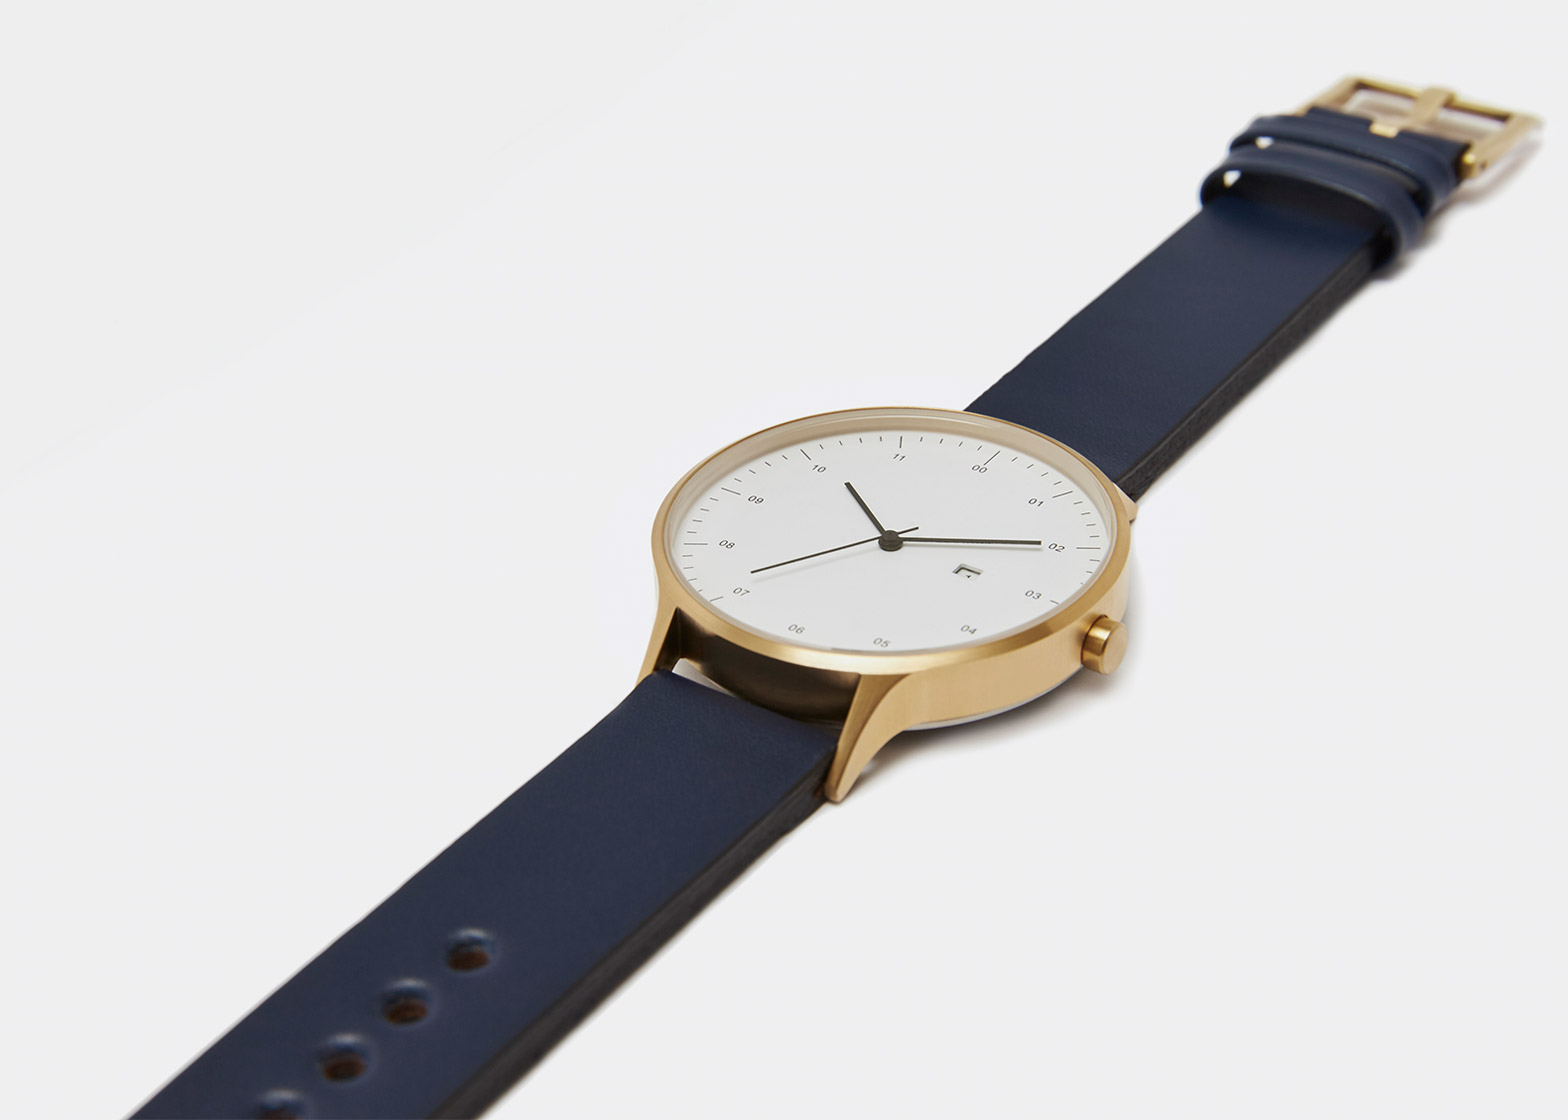 Instrmnt 01-DZN limited-edition watch launche available from Dezeen Watch Store